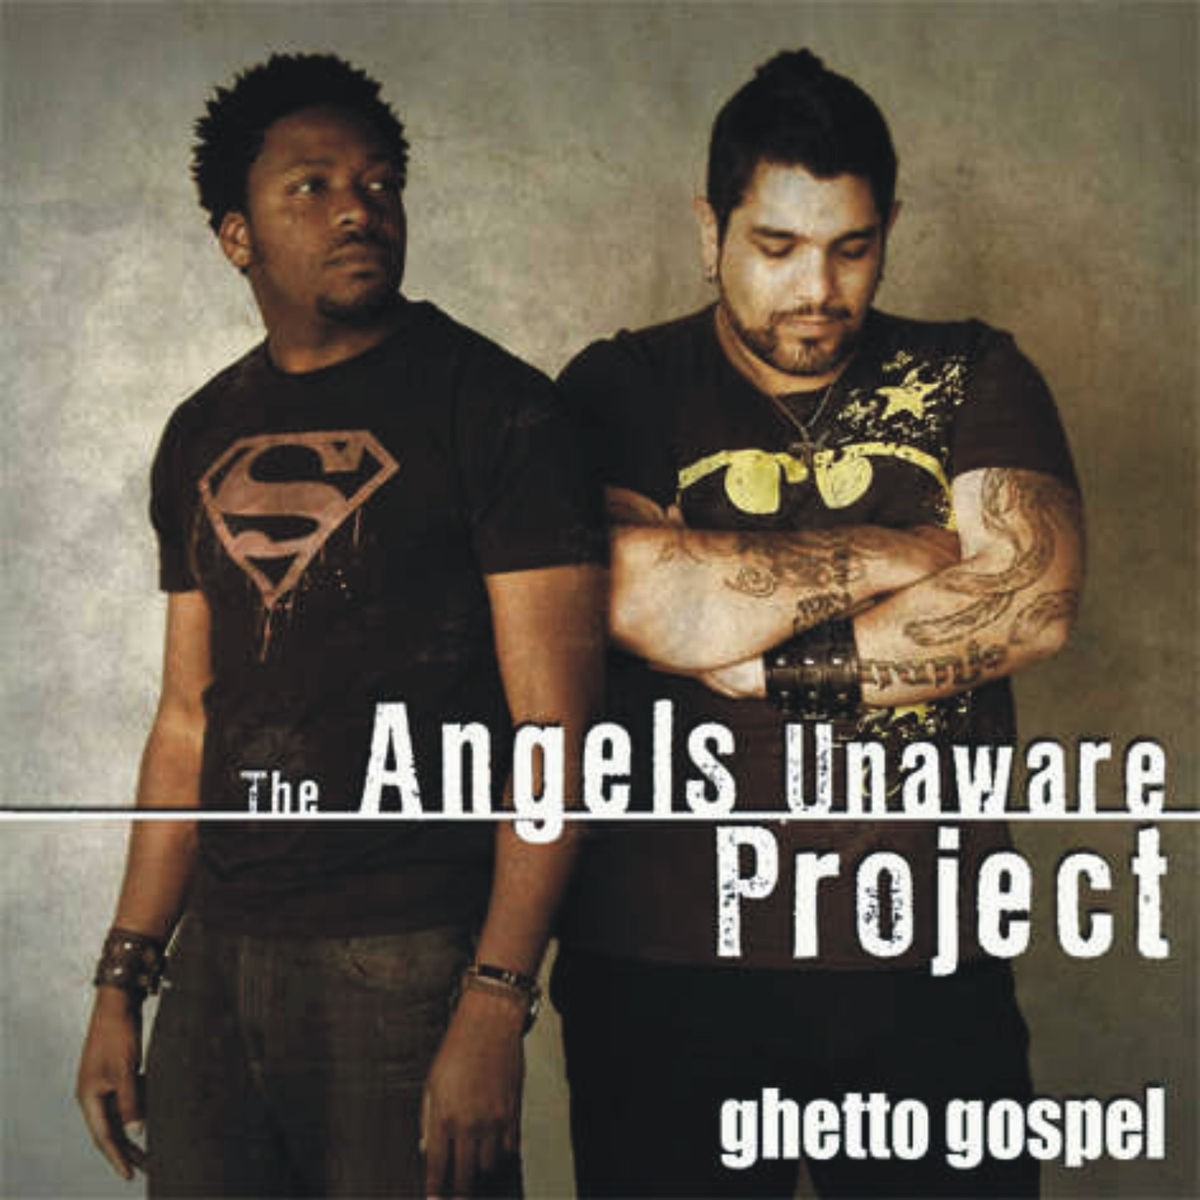 The Angels Unaware Project - Ghetto Gospel CD - OLRD024